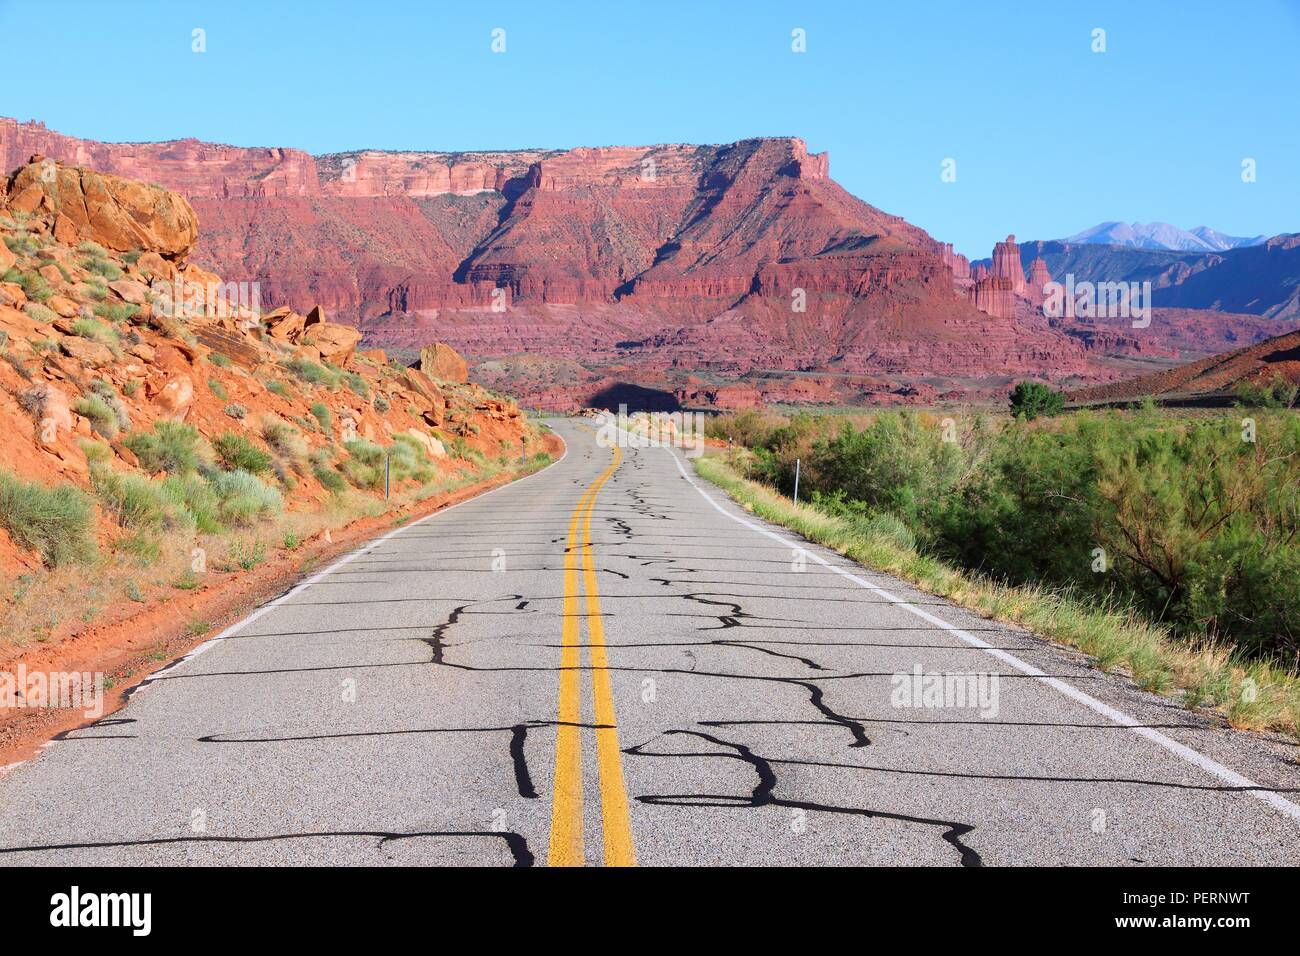 Utah, United States - road through famous Castle Valley. - Stock Image